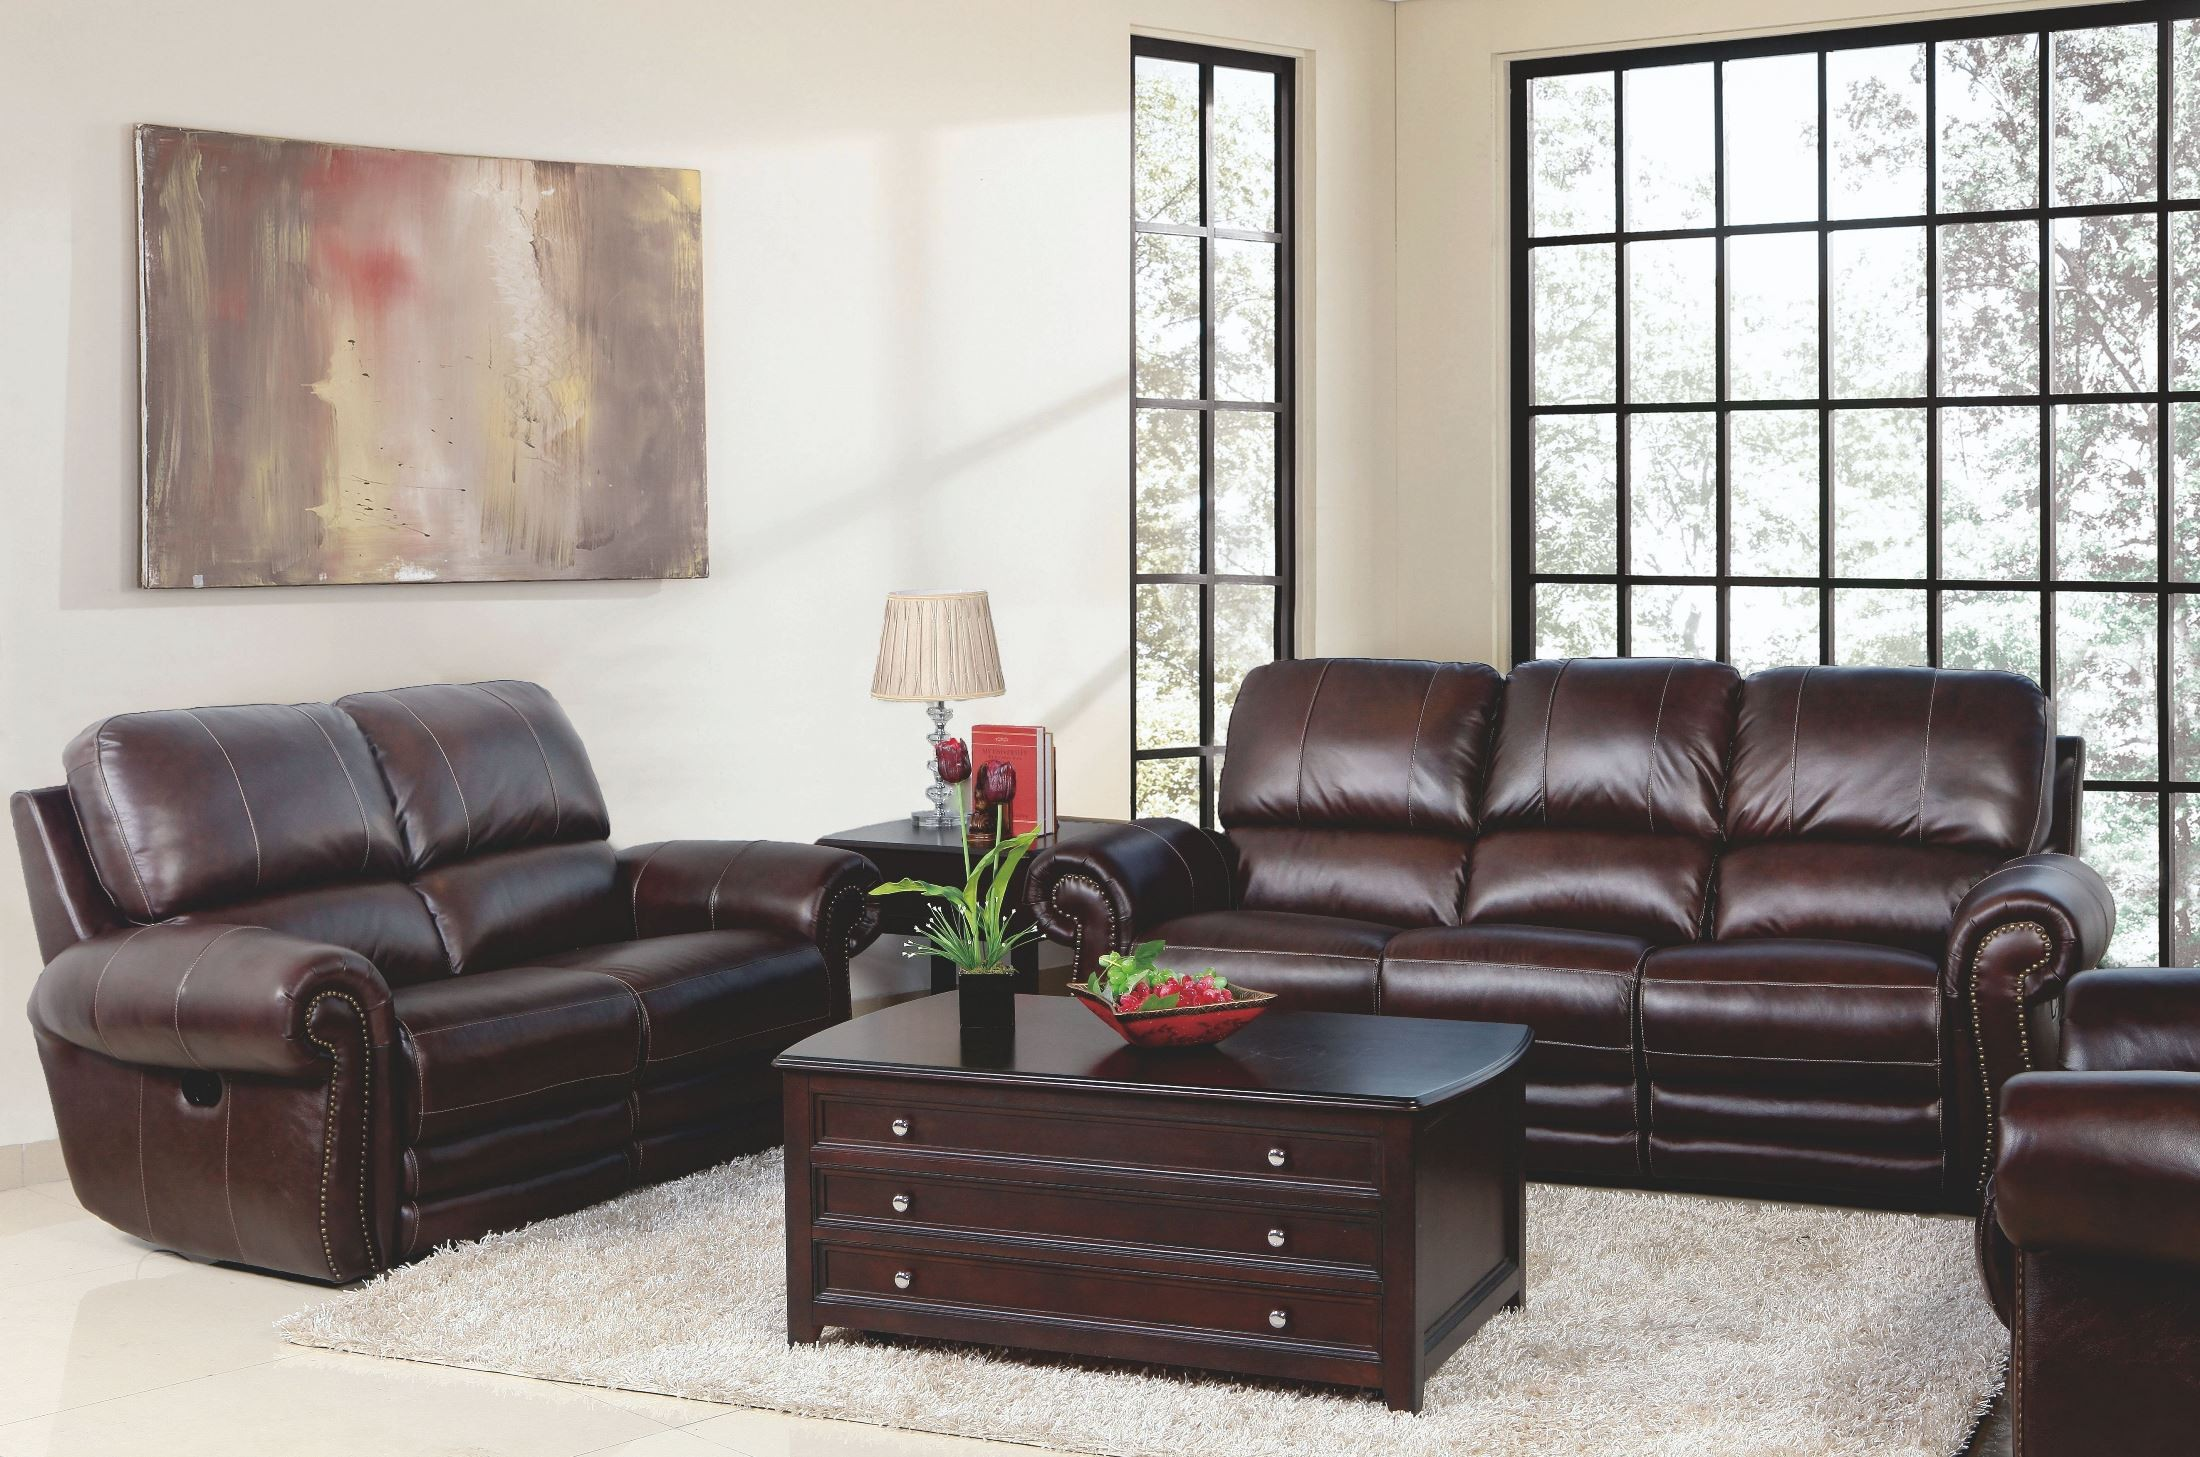 Rossi dark brown power reclining living room set from new for Dark brown living room set